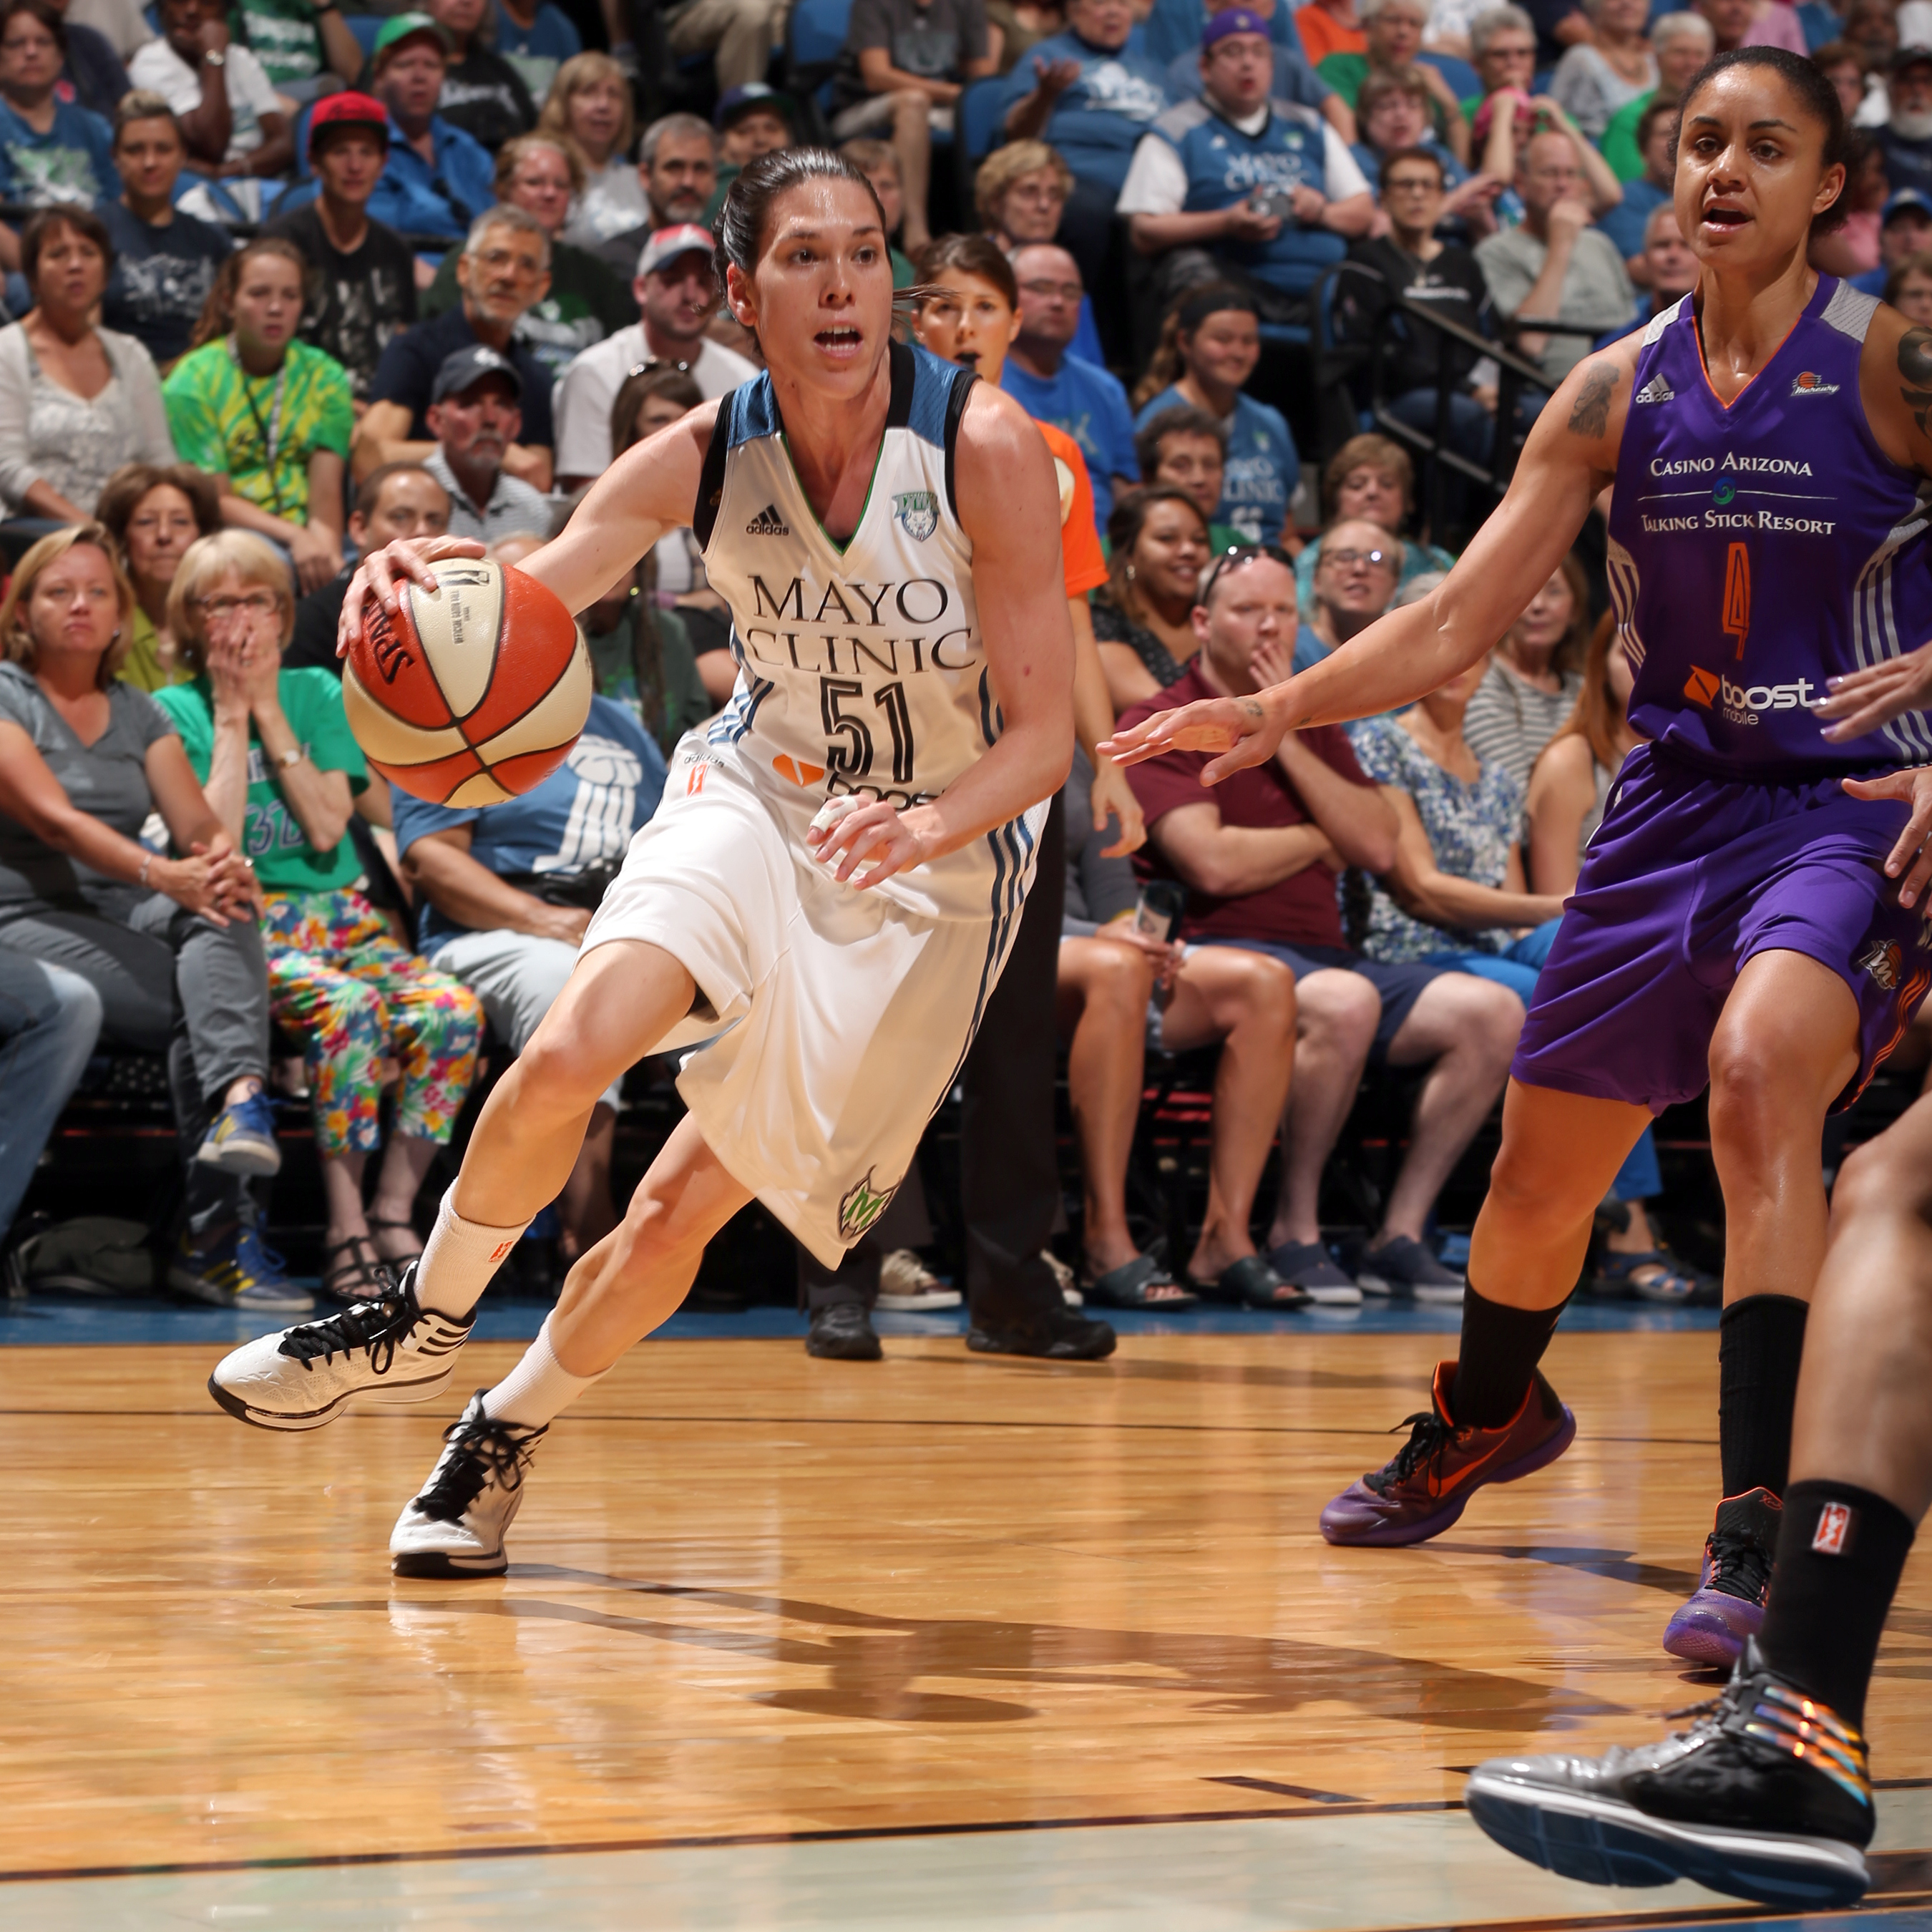 Lynx guard Anna Cruz gave Minnesota much needed defensive energy and helped to shut down Mercury guards. Cruz finished with six points,  three rebounds, four assists and three steals.